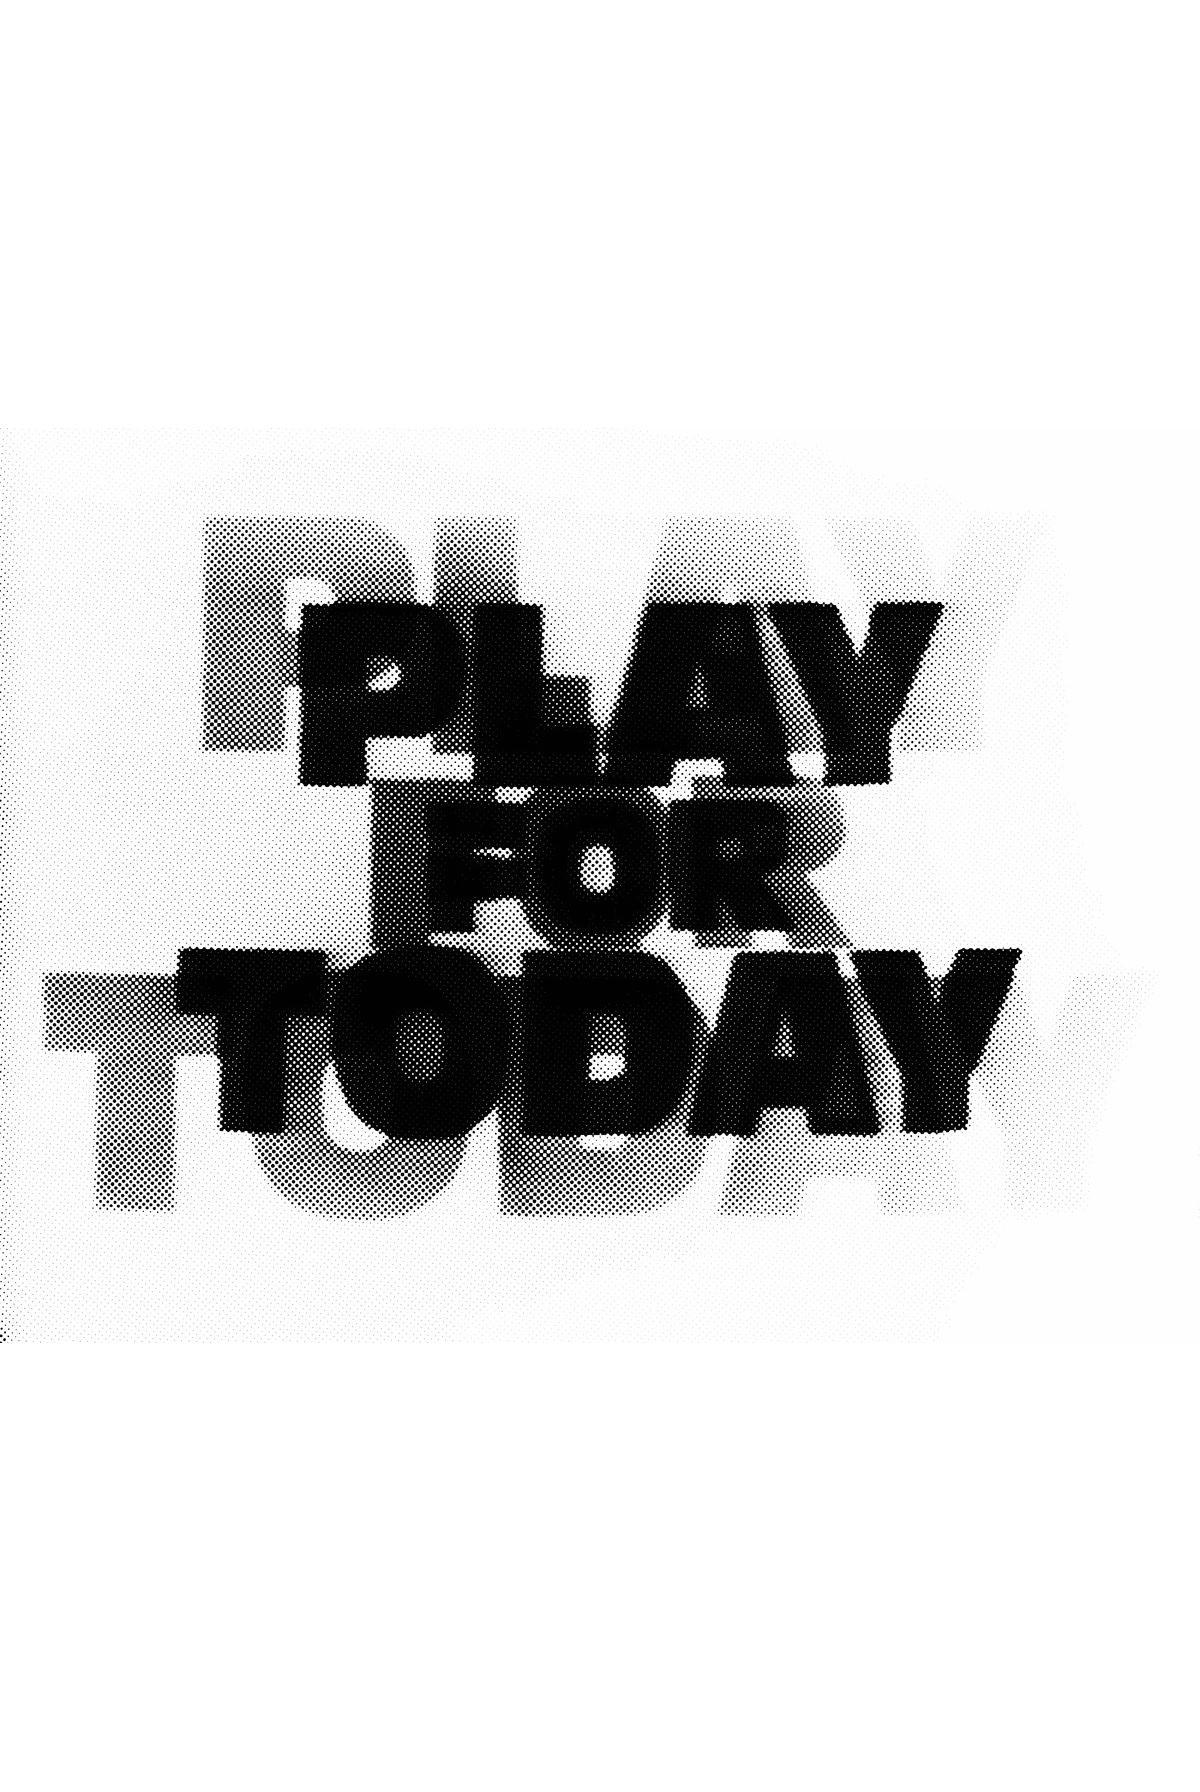 Play for Today - IMDbPro